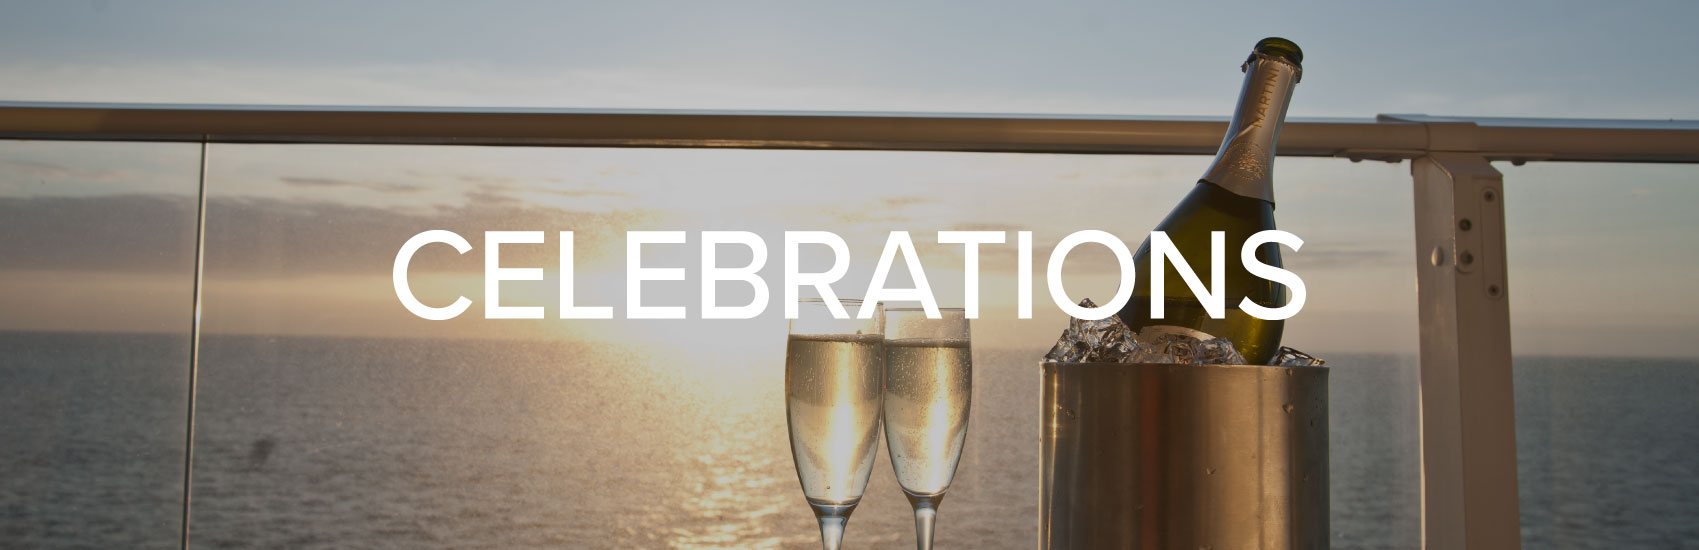 Royal Caribbean | Celebrations